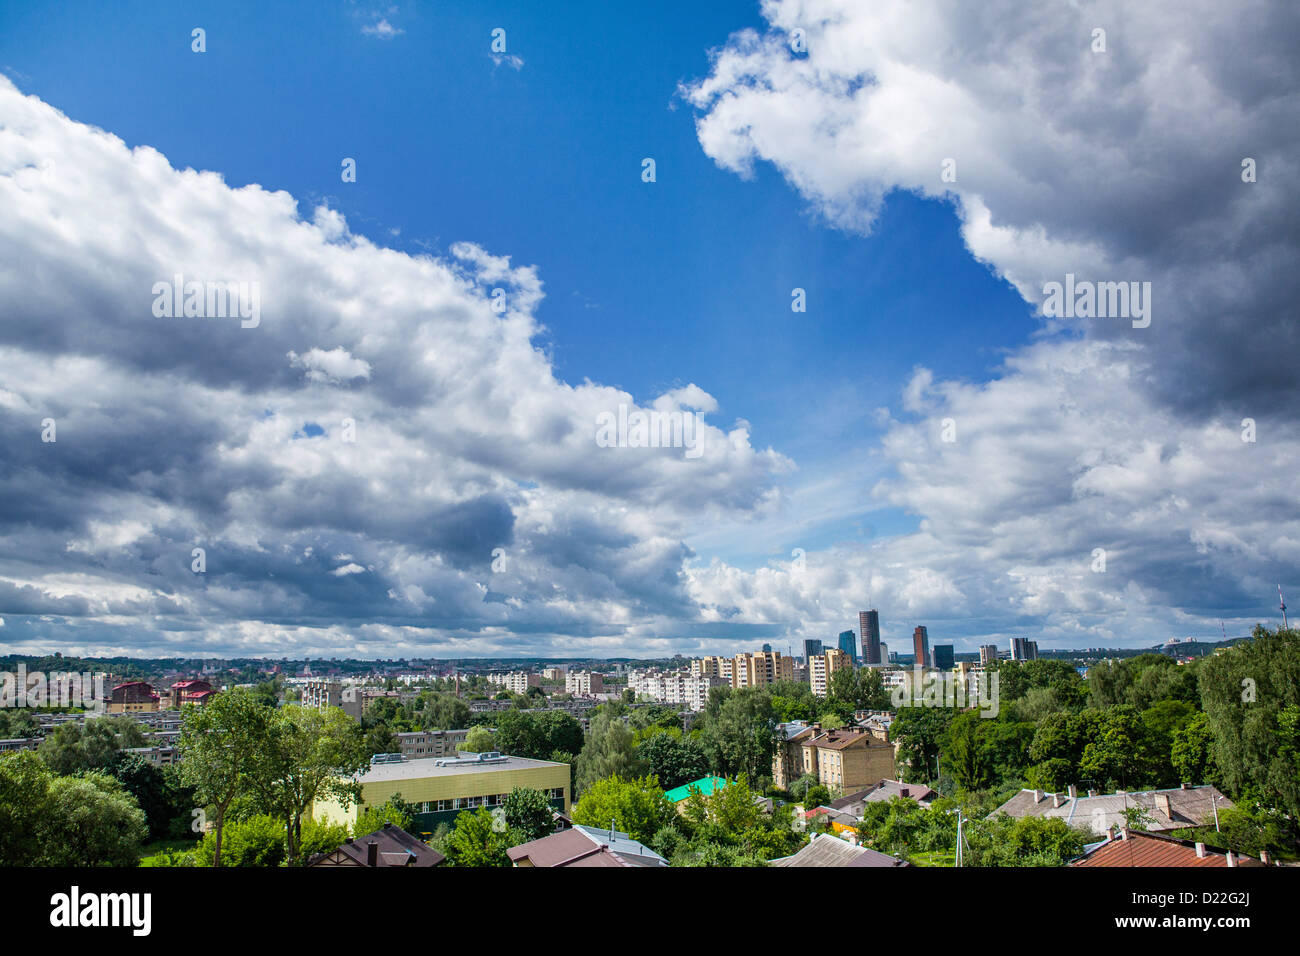 Panorama of Vilnius on a cloudy day Stock Photo